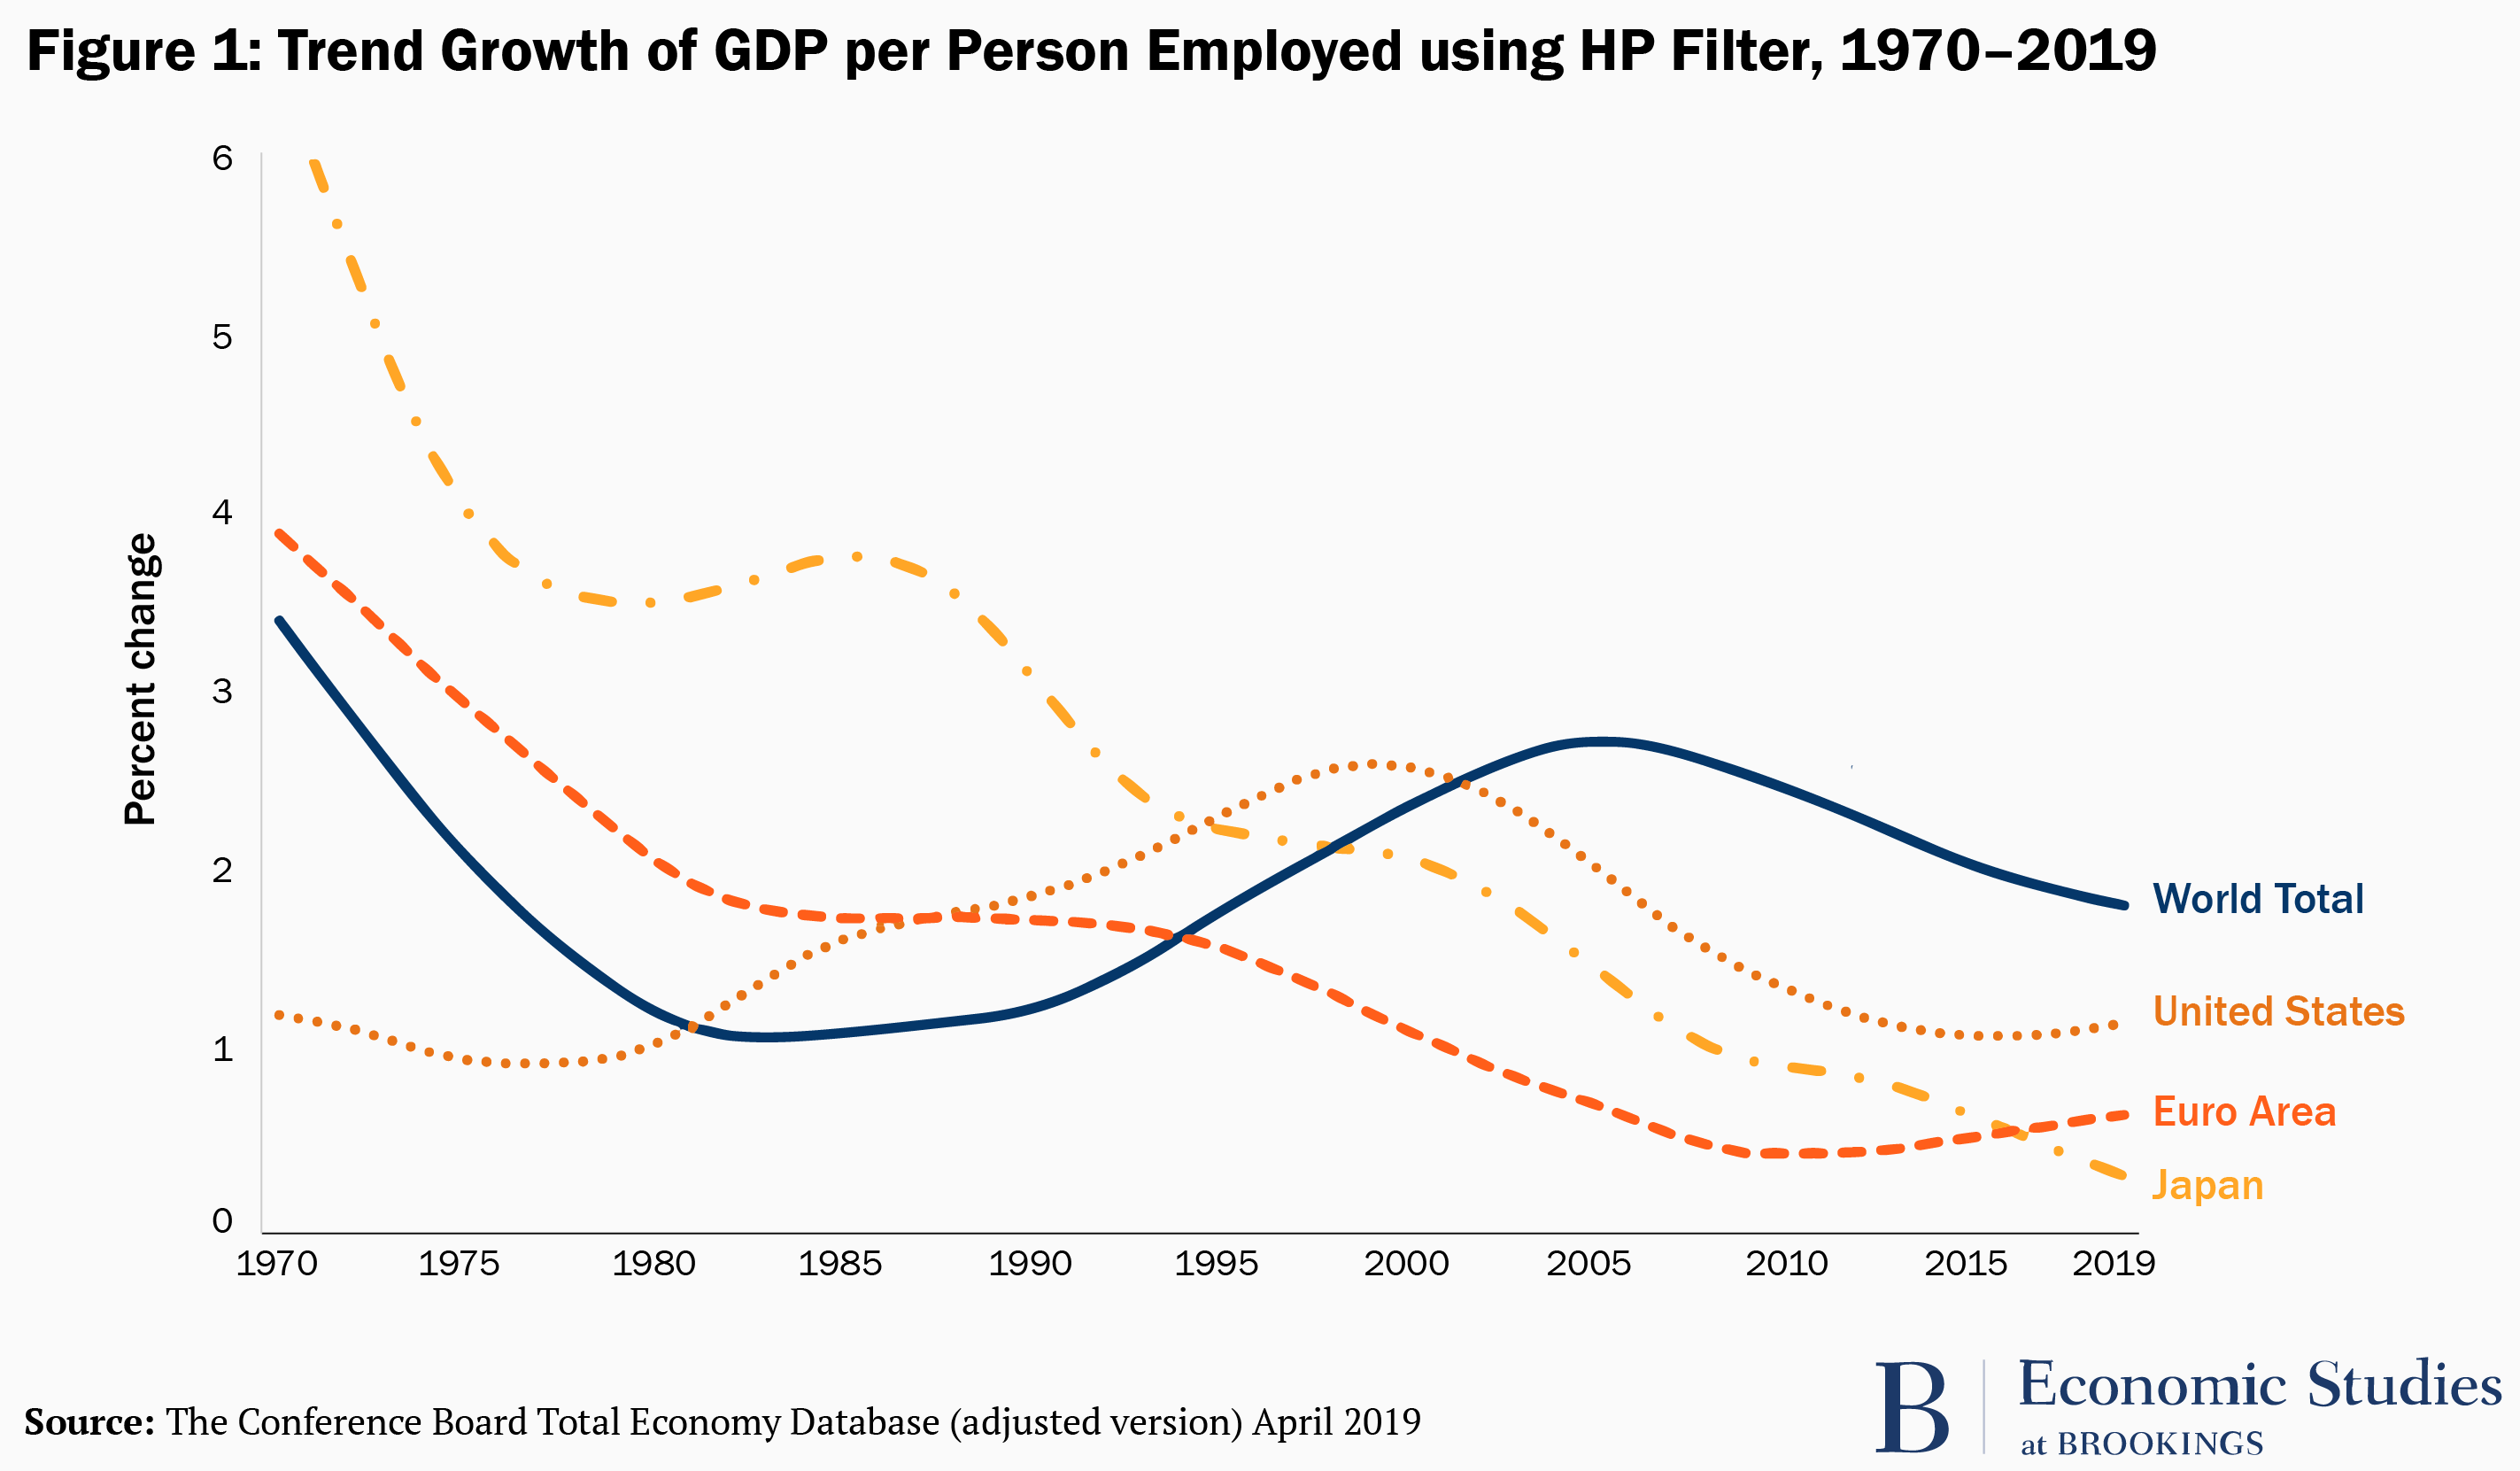 Trend Growth of GDP per Person Employed using HP Filter